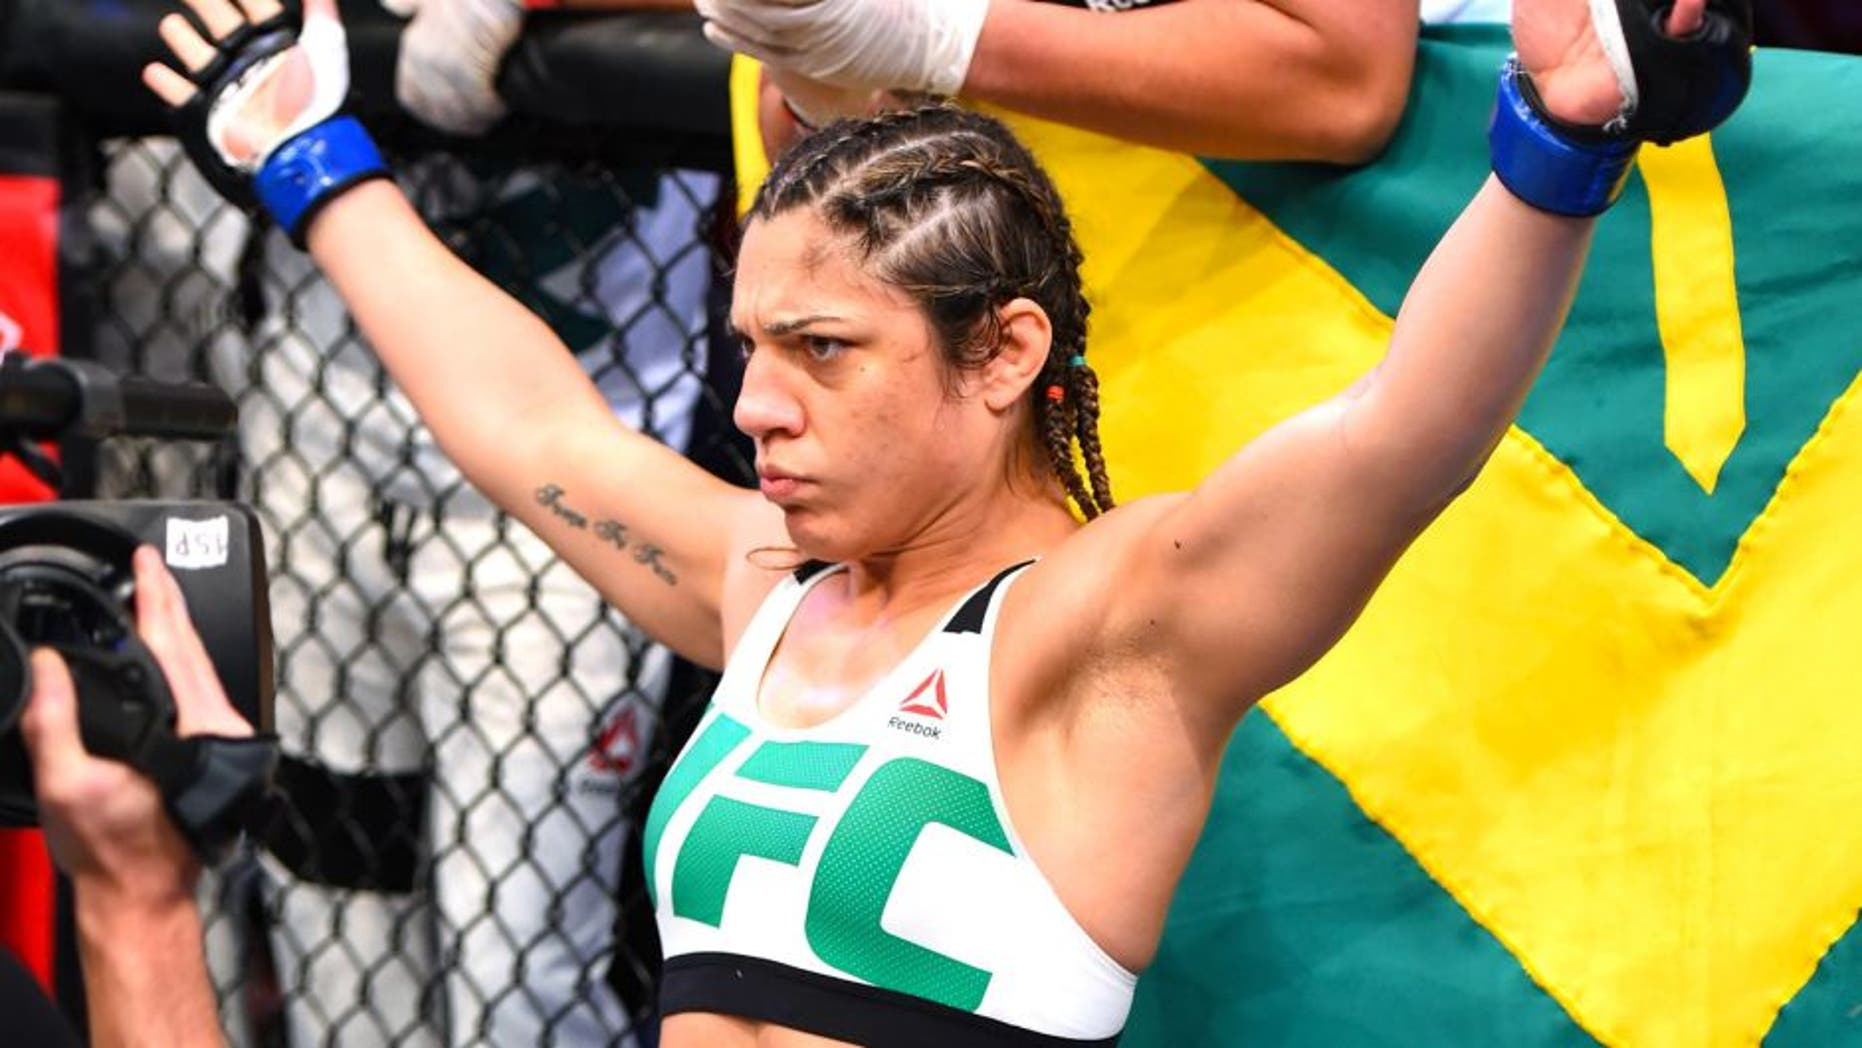 RIO DE JANEIRO, BRAZIL - AUGUST 01: Bethe Correia of Brazil enters the Octagon before facing Ronda Rousey of the United States in their UFC women's bantamweight championship bout during the UFC 190 event inside HSBC Arena on August 1, 2015 in Rio de Janeiro, Brazil. (Photo by Josh Hedges/Zuffa LLC/Zuffa LLC via Getty Images)